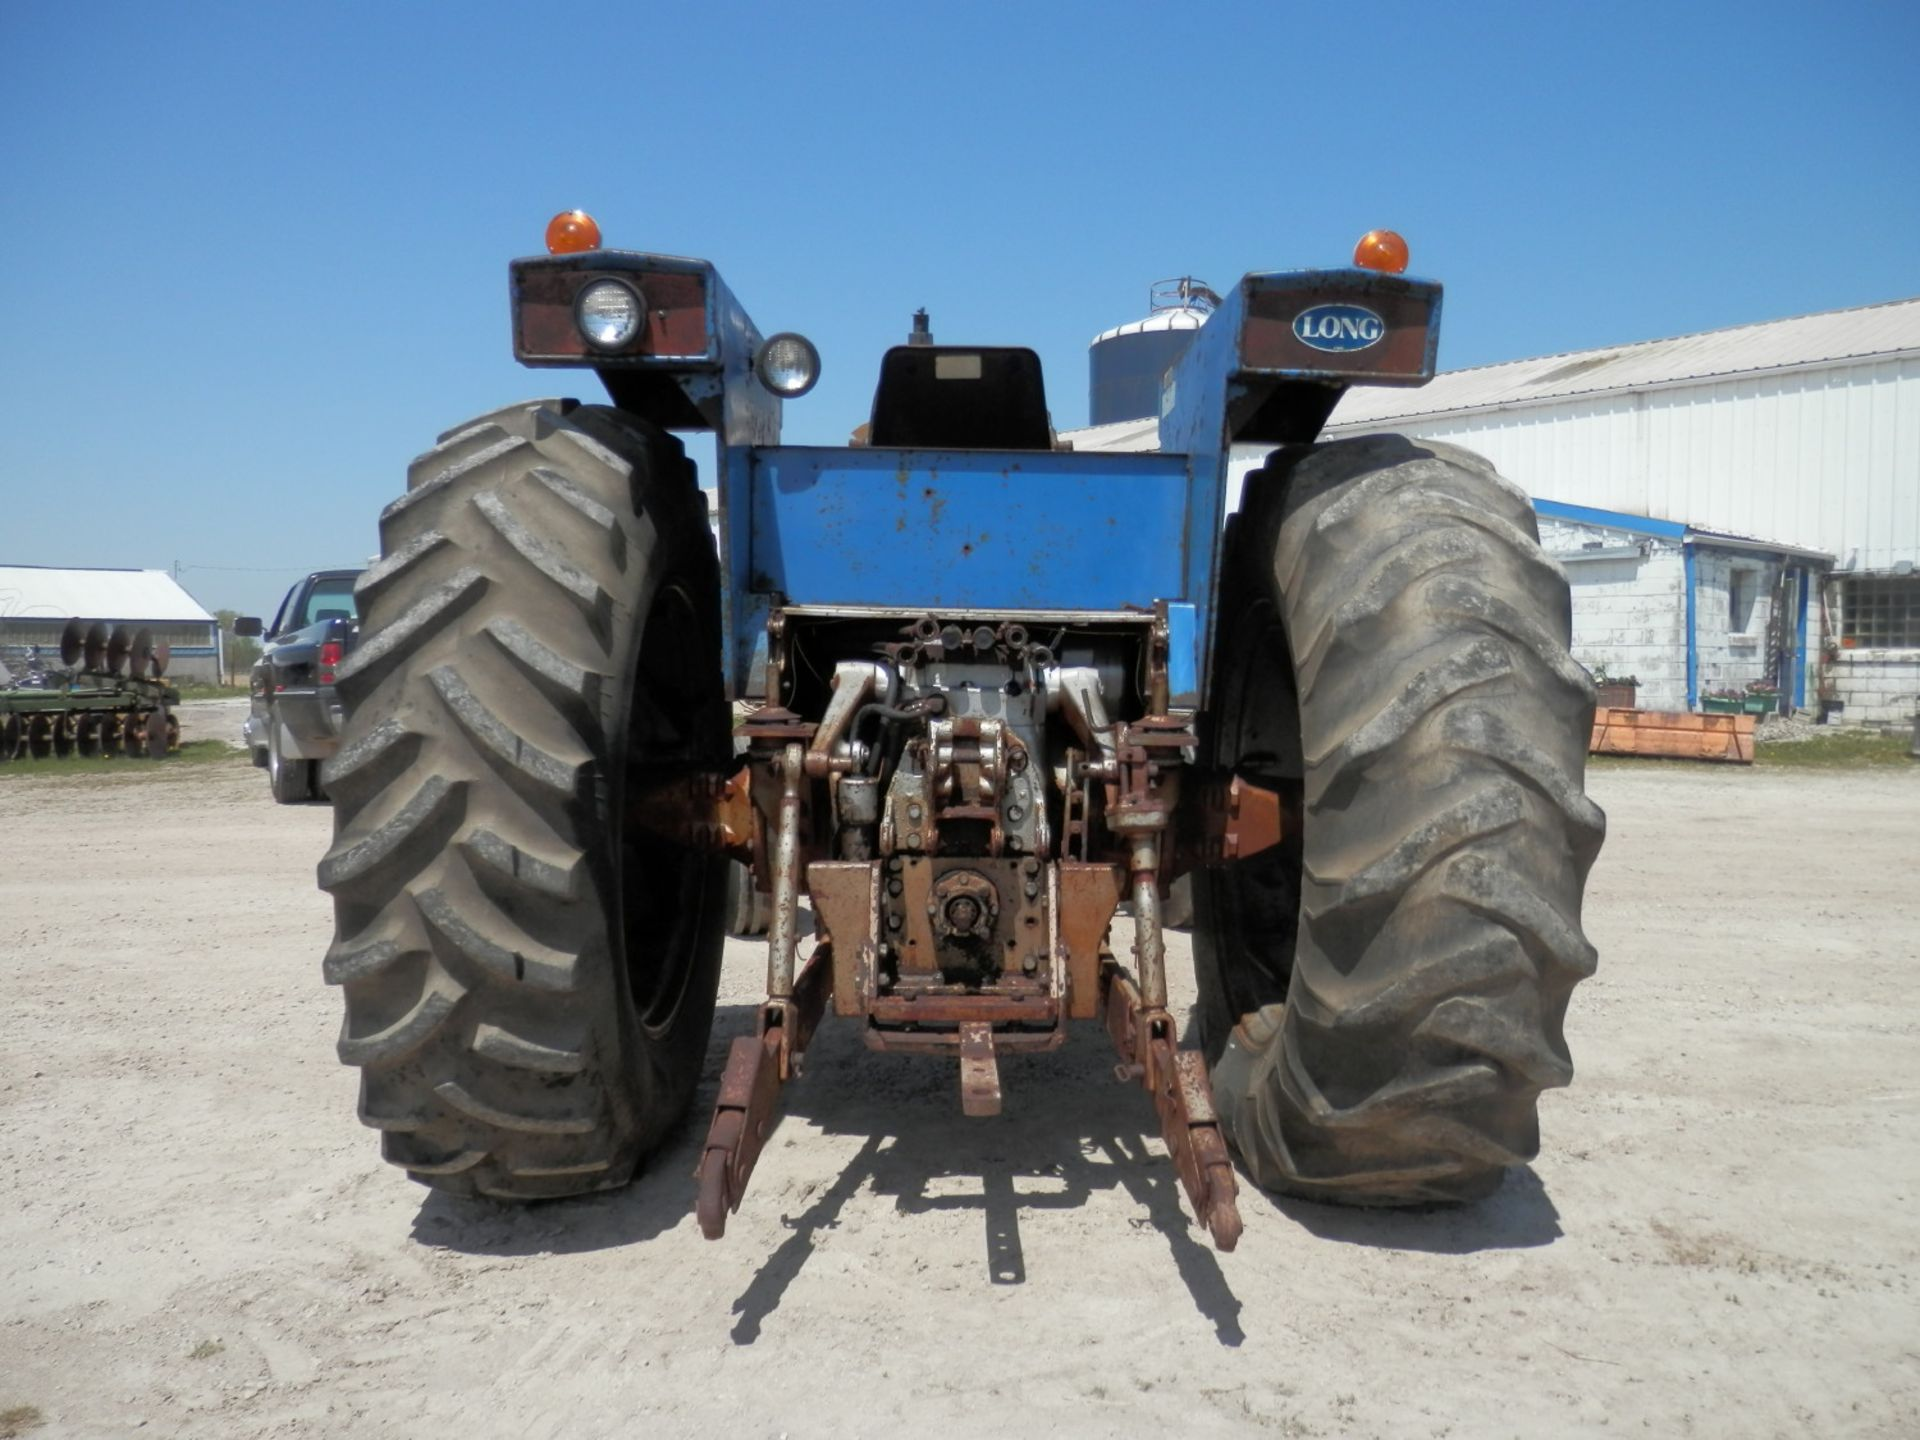 LONG 1310 DSL. TRACTOR - Image 4 of 8